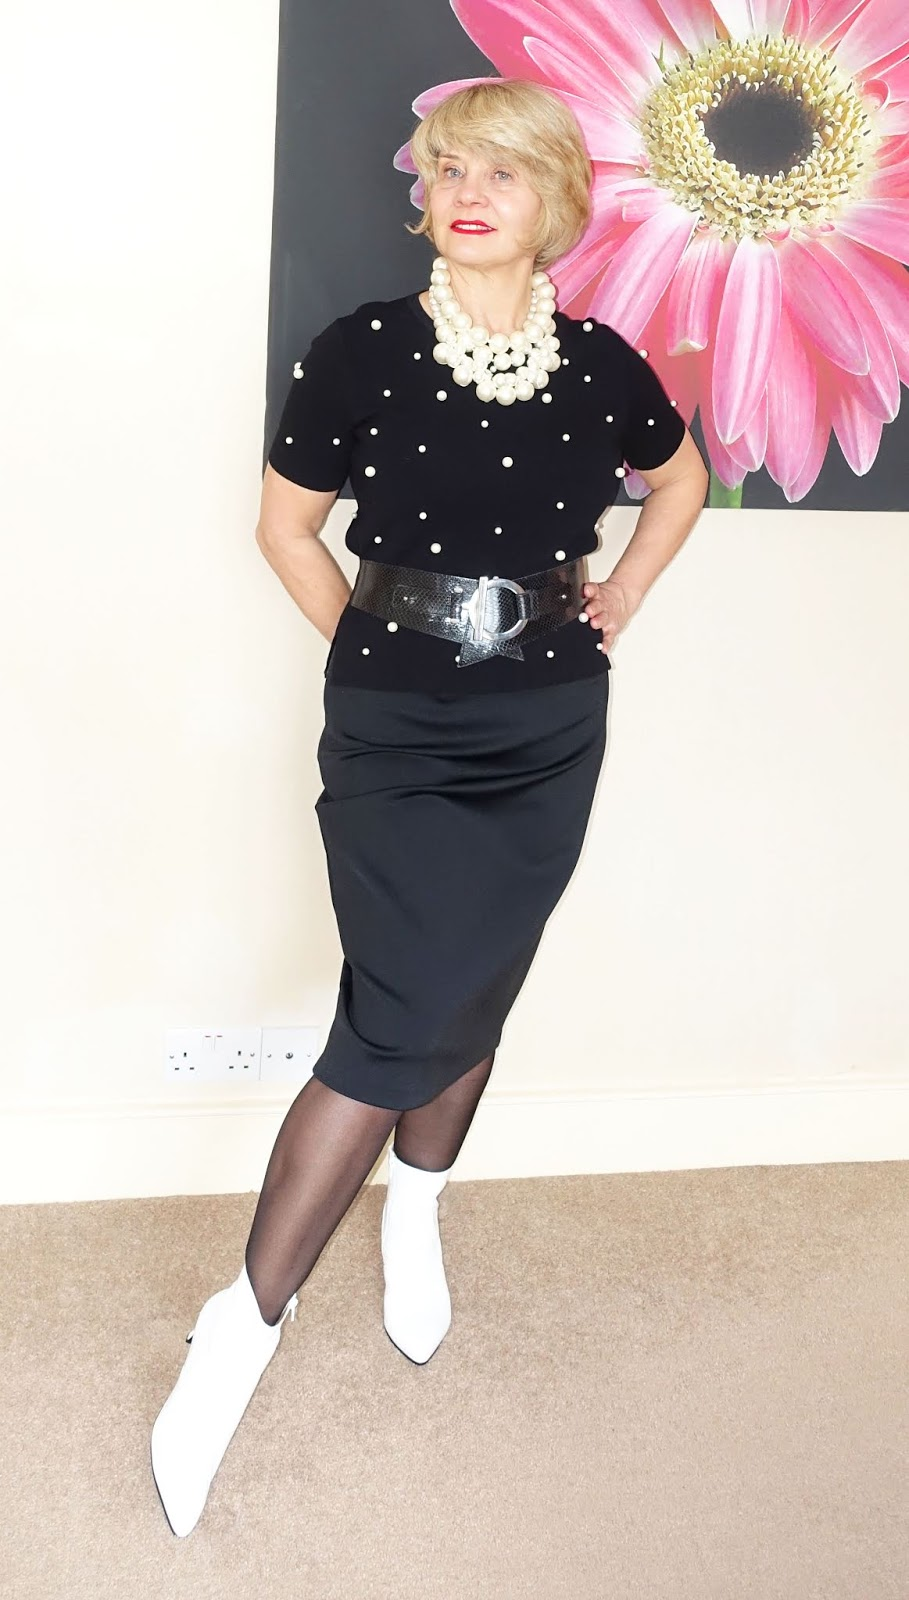 A black skirt and top with white ankle boots, layered pearl necklaces and 20 denier black shaping tights by FiOre, worn by over 45 blogger Gail Hanlon from Is This Mutton dot com